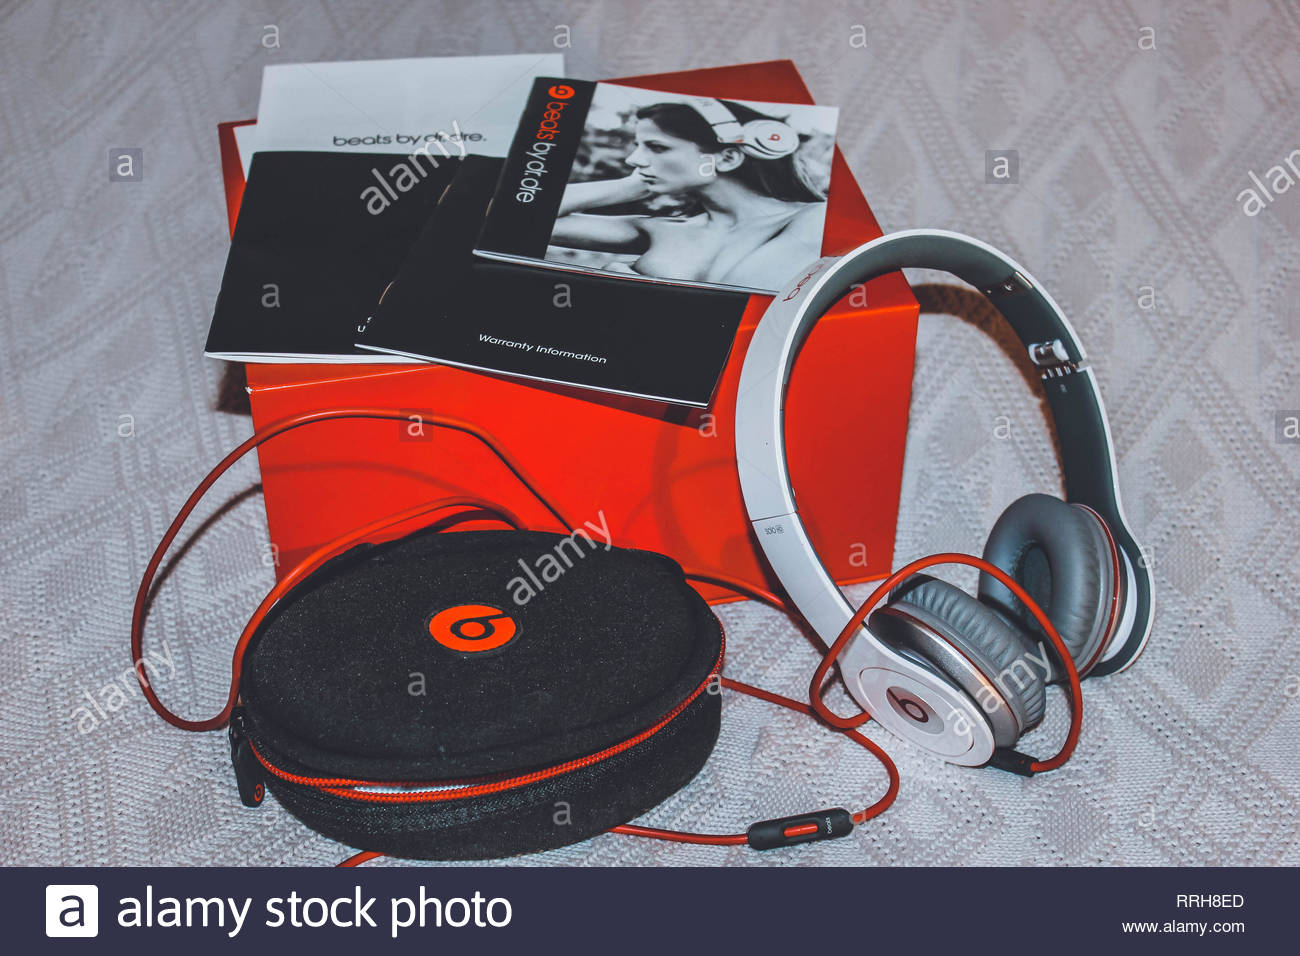 Headphones Beats By Dr Dre Solo Hd With Red Box And Black Bag Audio Products Image On Grey Background Stock Photo Alamy